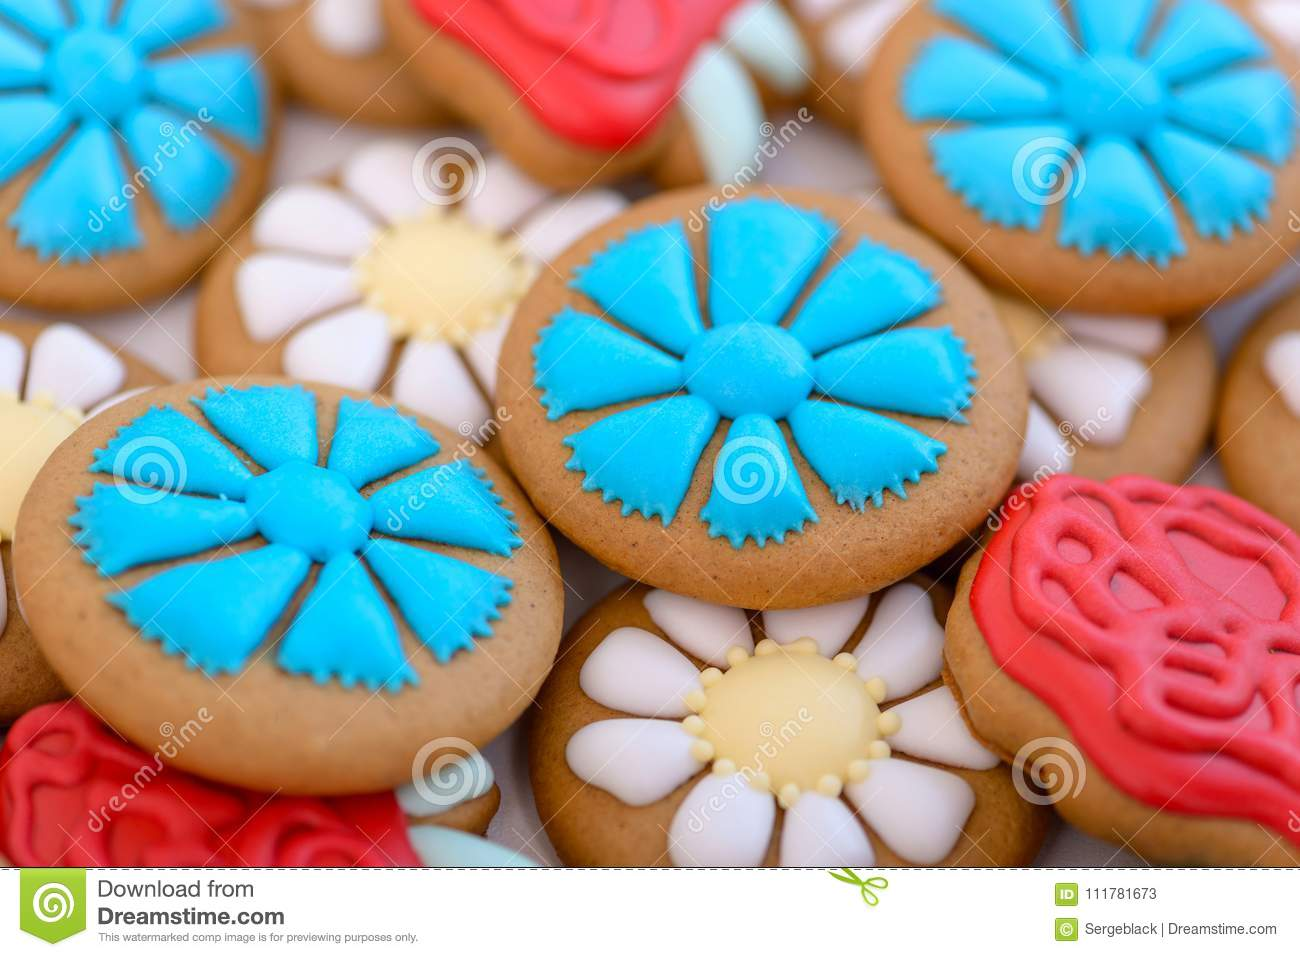 Close-up colorful gingerbread cookie